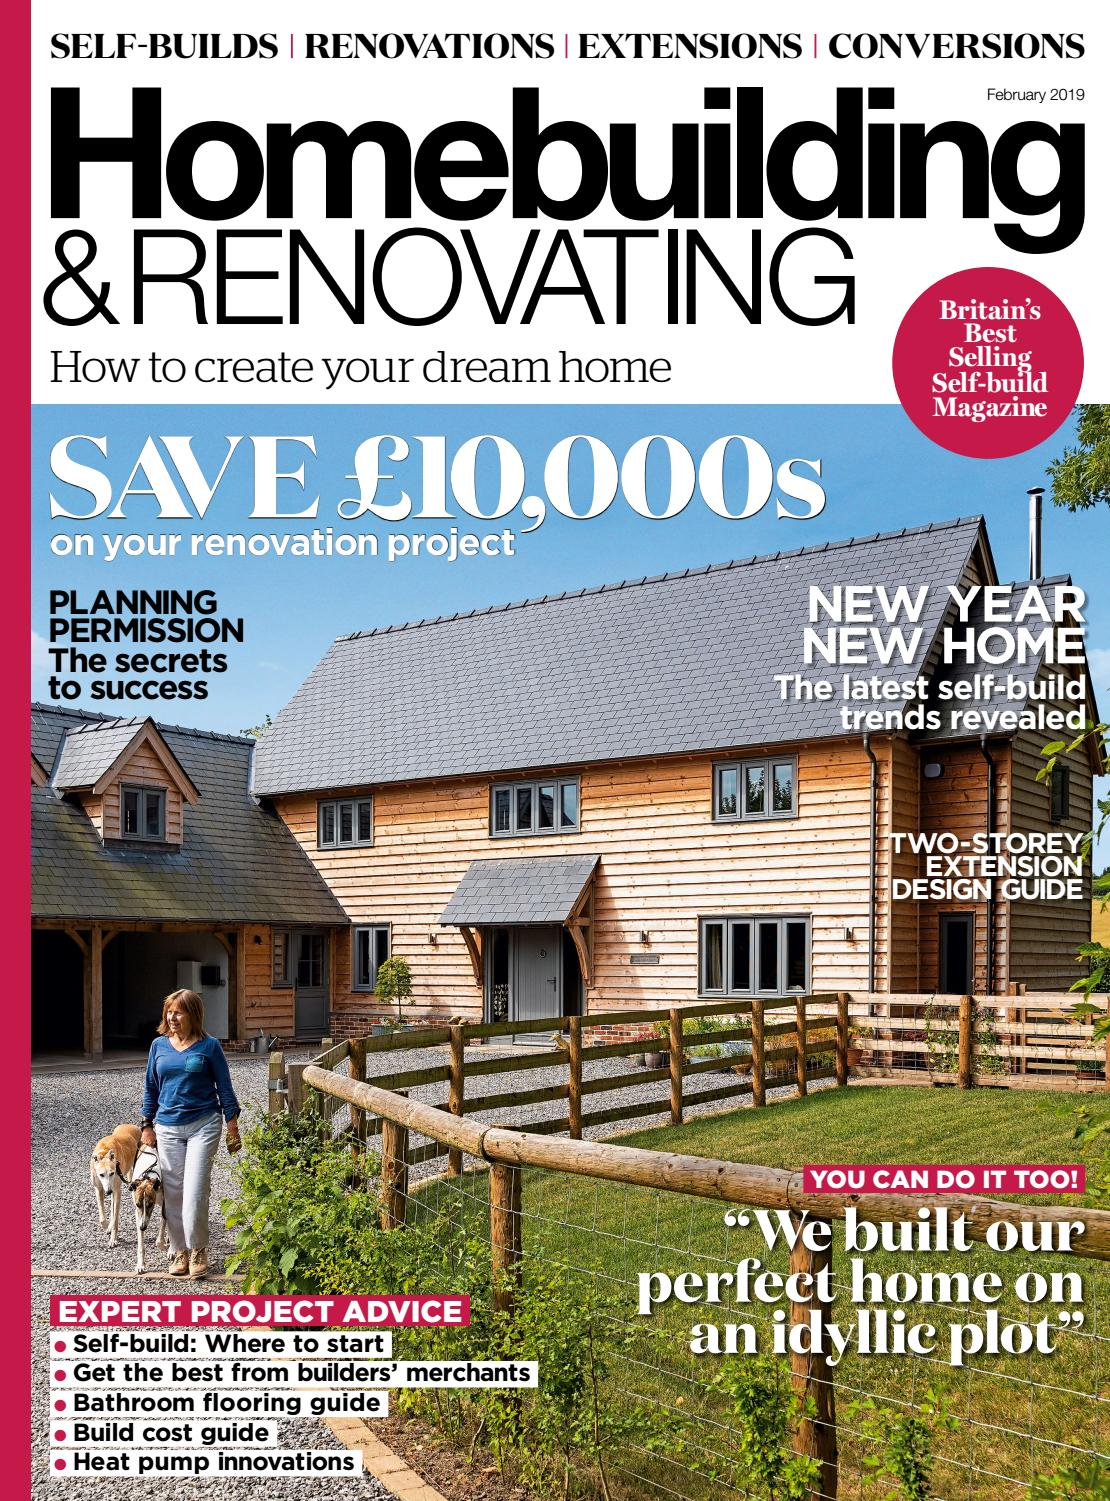 Homebuilding Renovating: Homebuilding & Renovating 146 (Sampler) By Future PLC